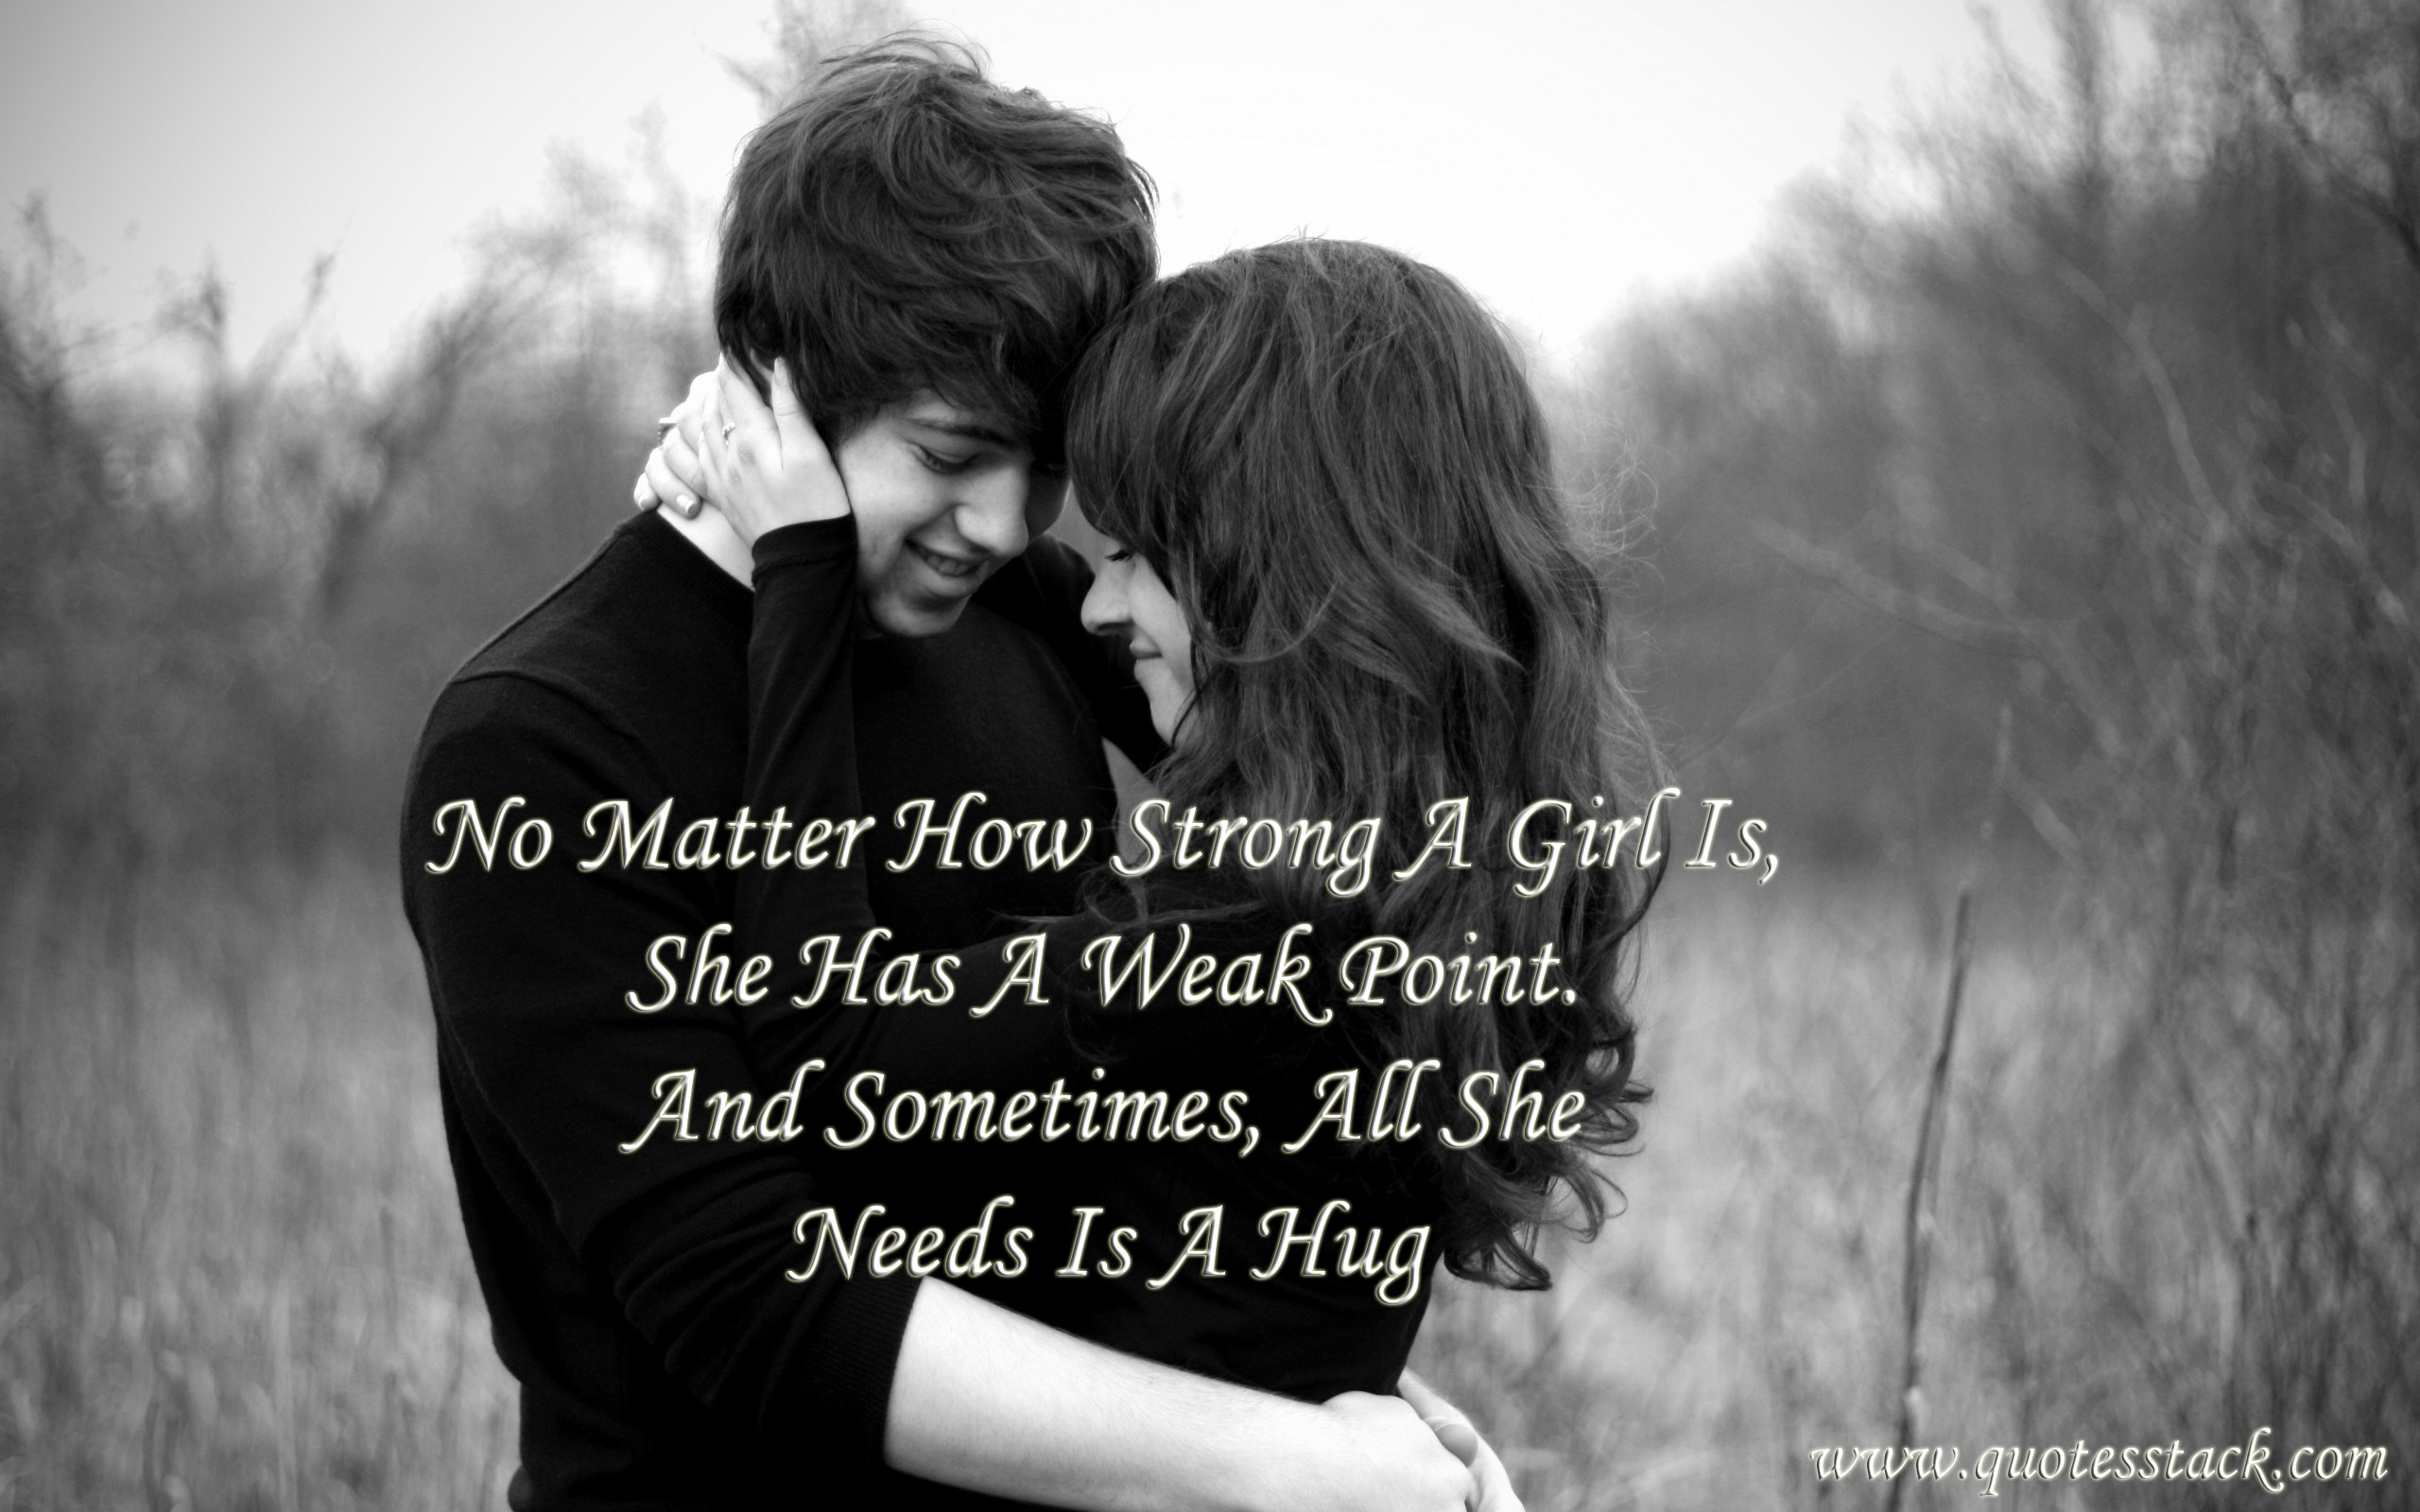 Love Quotes For Him Hug : Hug Images Of Lovers With Quotes - HD Photos Gallery